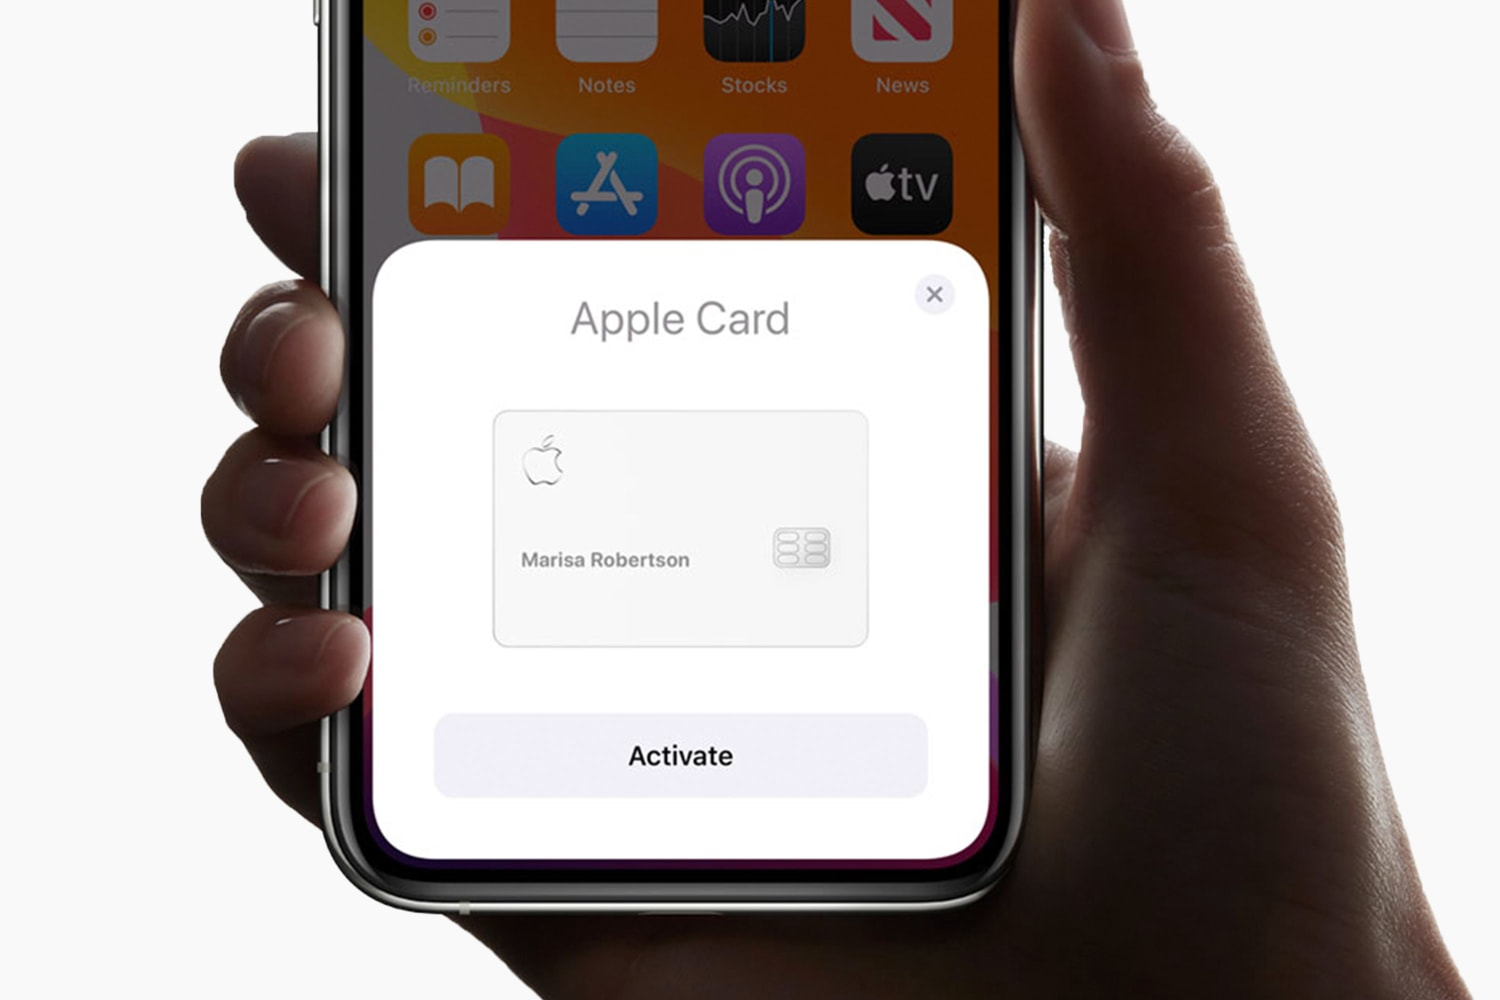 introducing-the-apple-card-for-the-web-is-it-worth-it-20201117-1